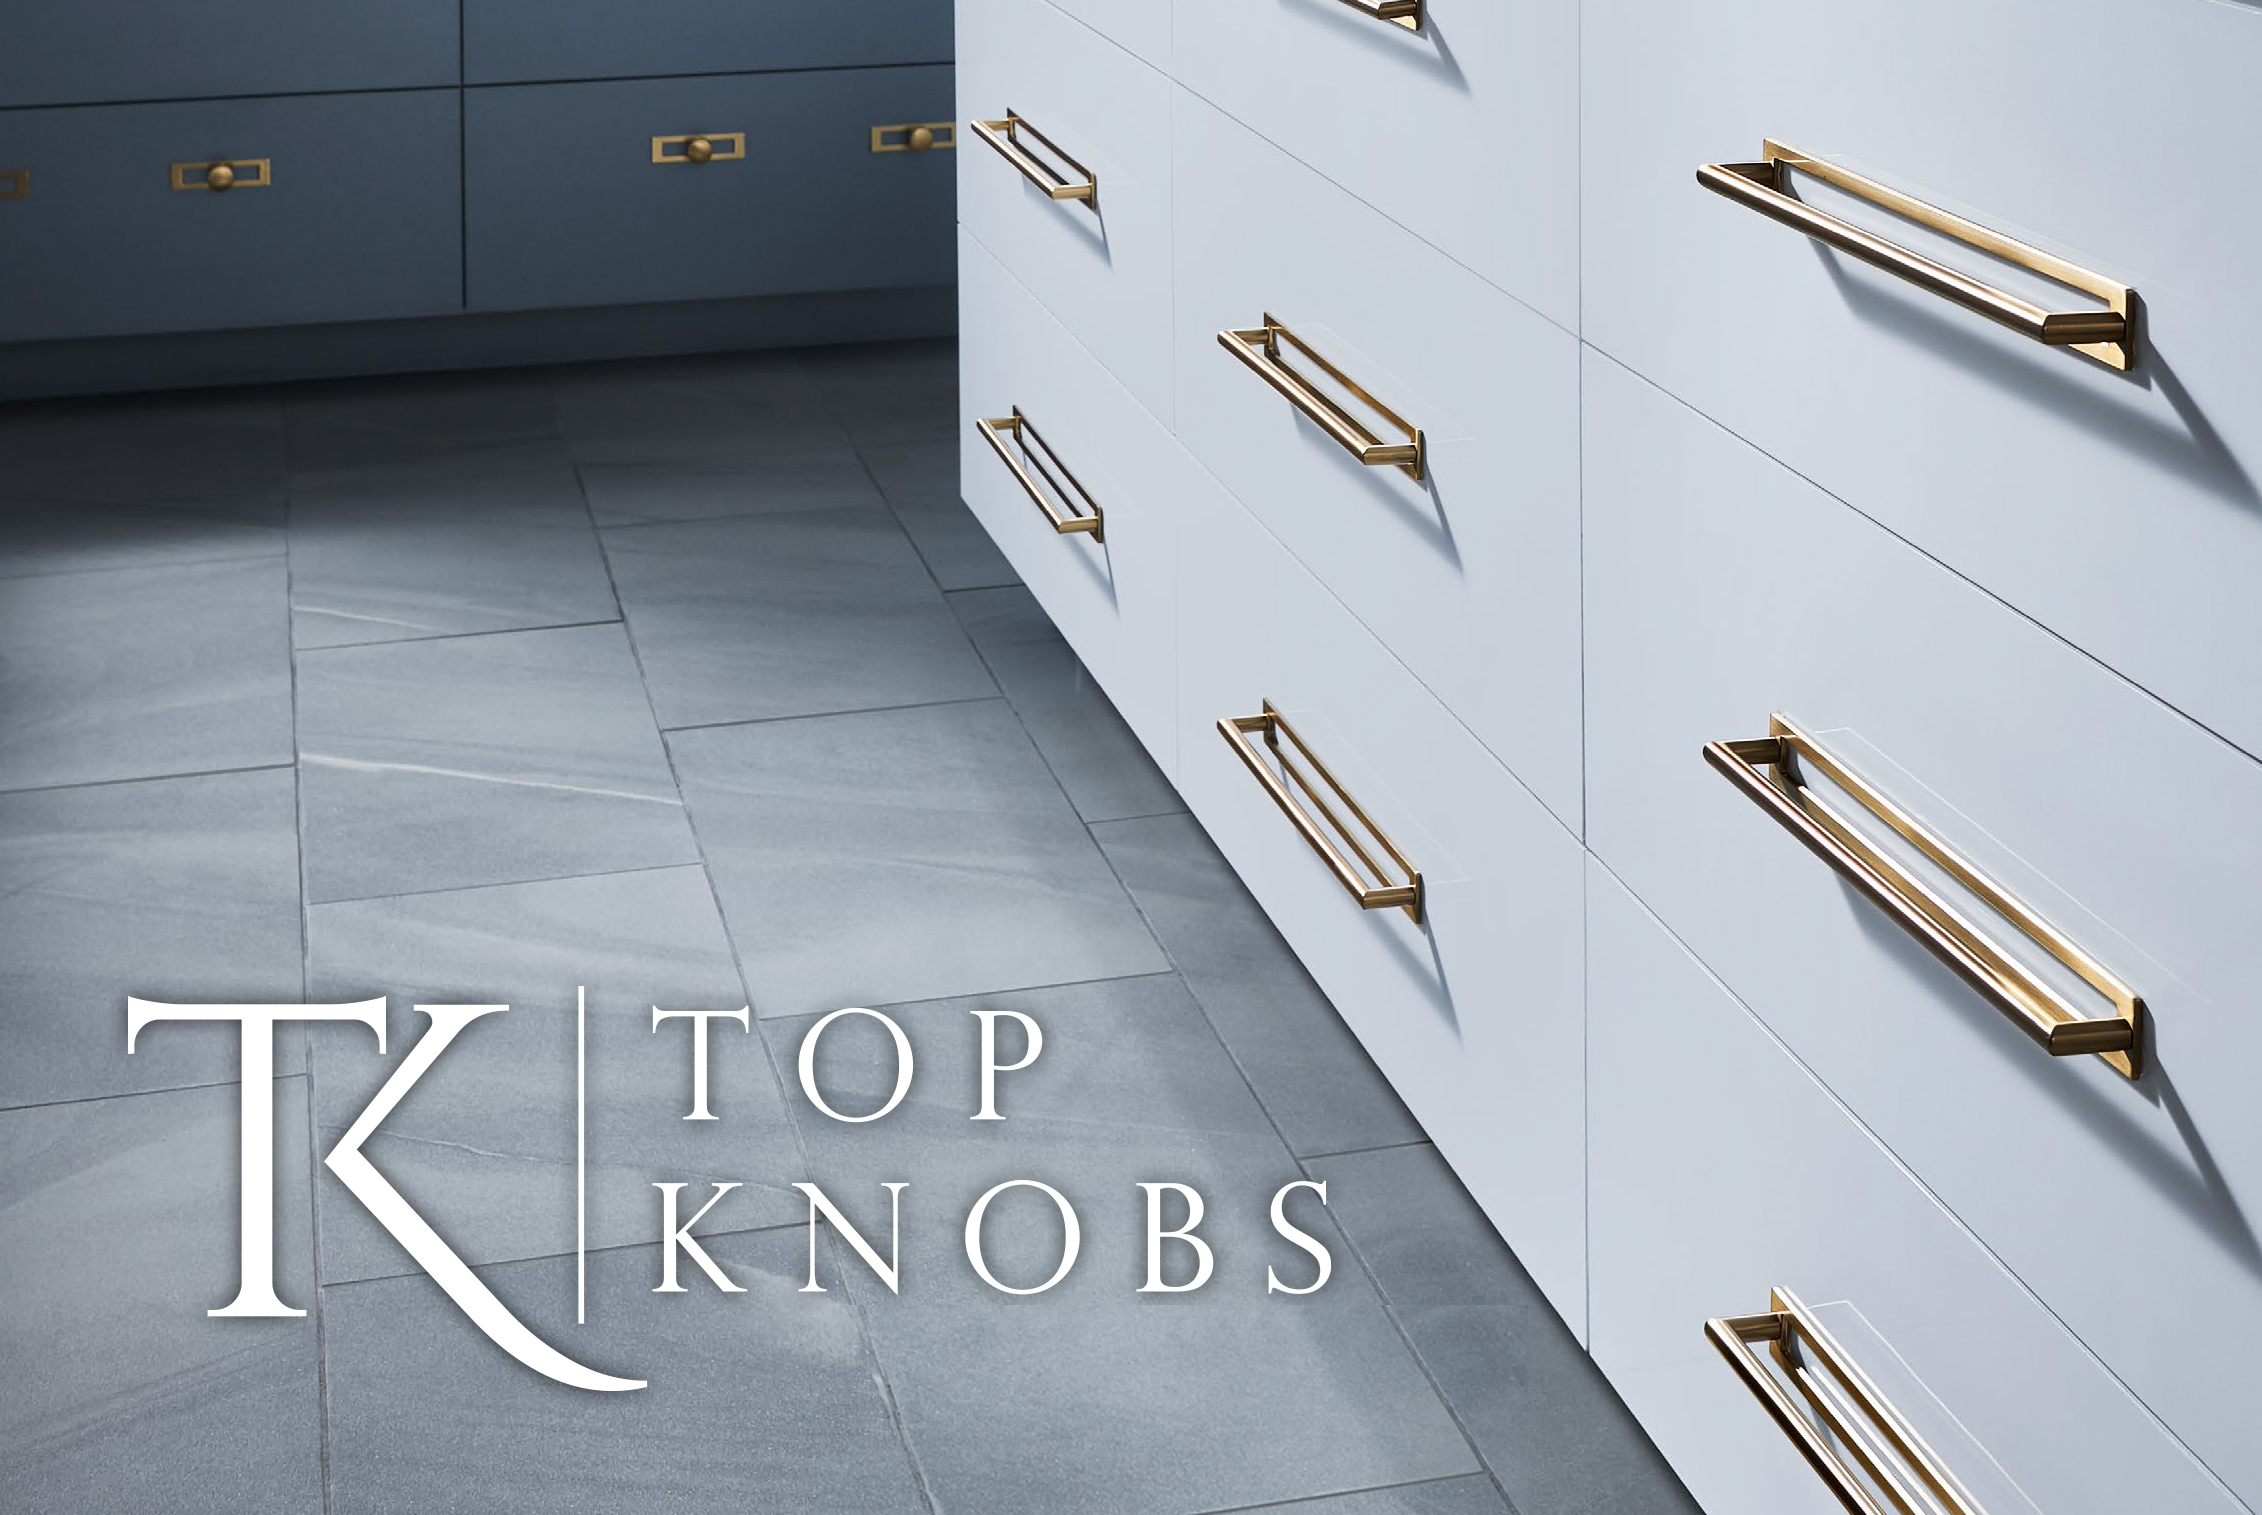 Company News Archives - Top Knobs Top Expressions: projects and news